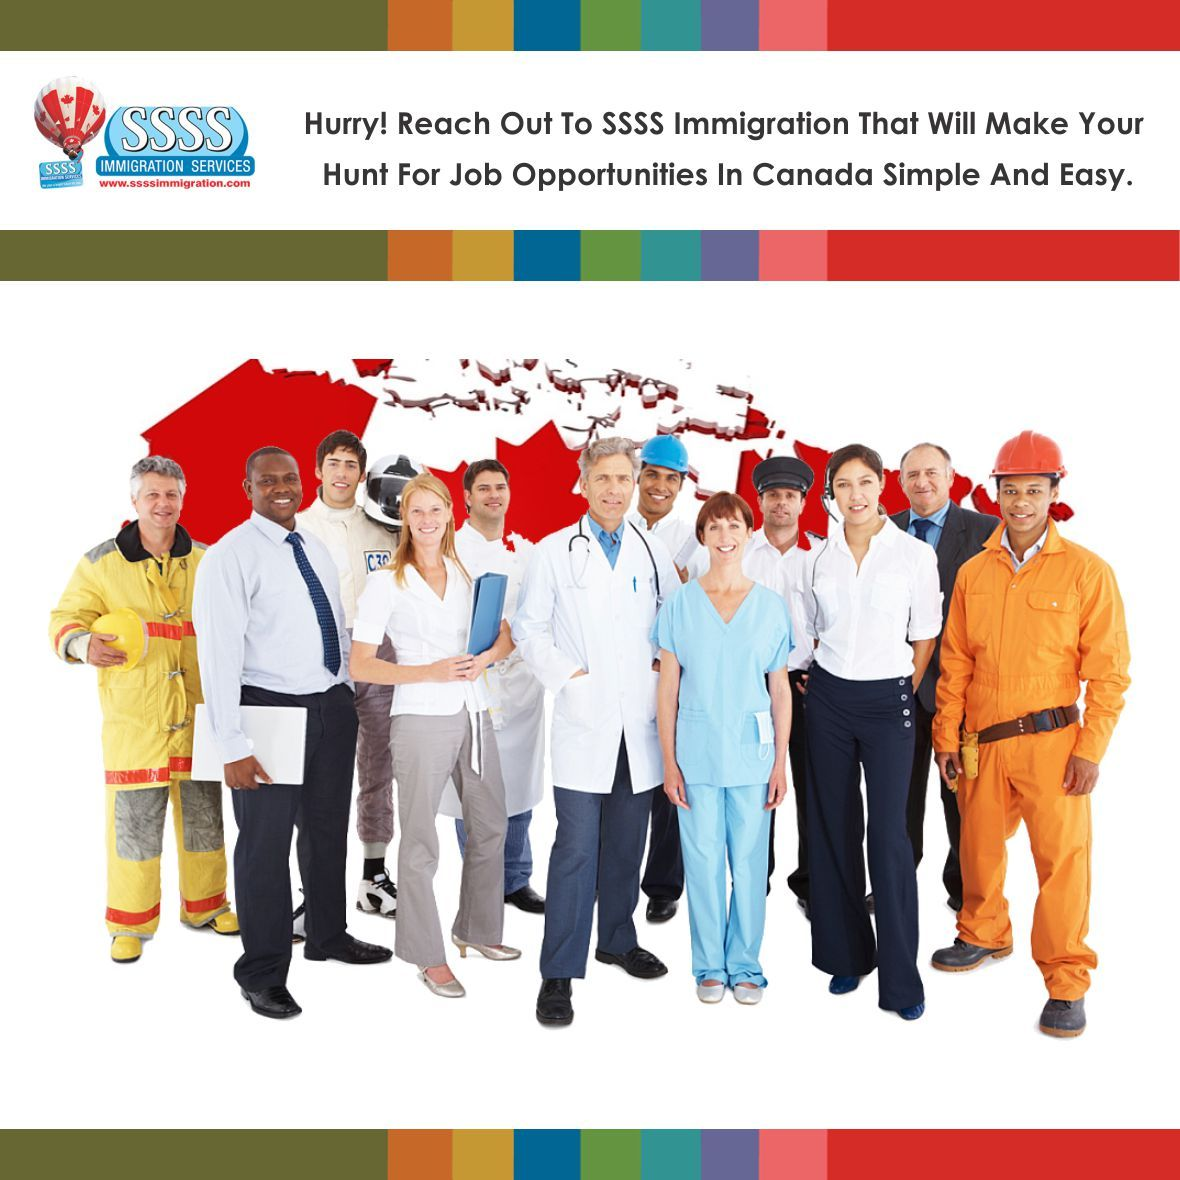 SSSS Immigration can assist you to check your eligibility